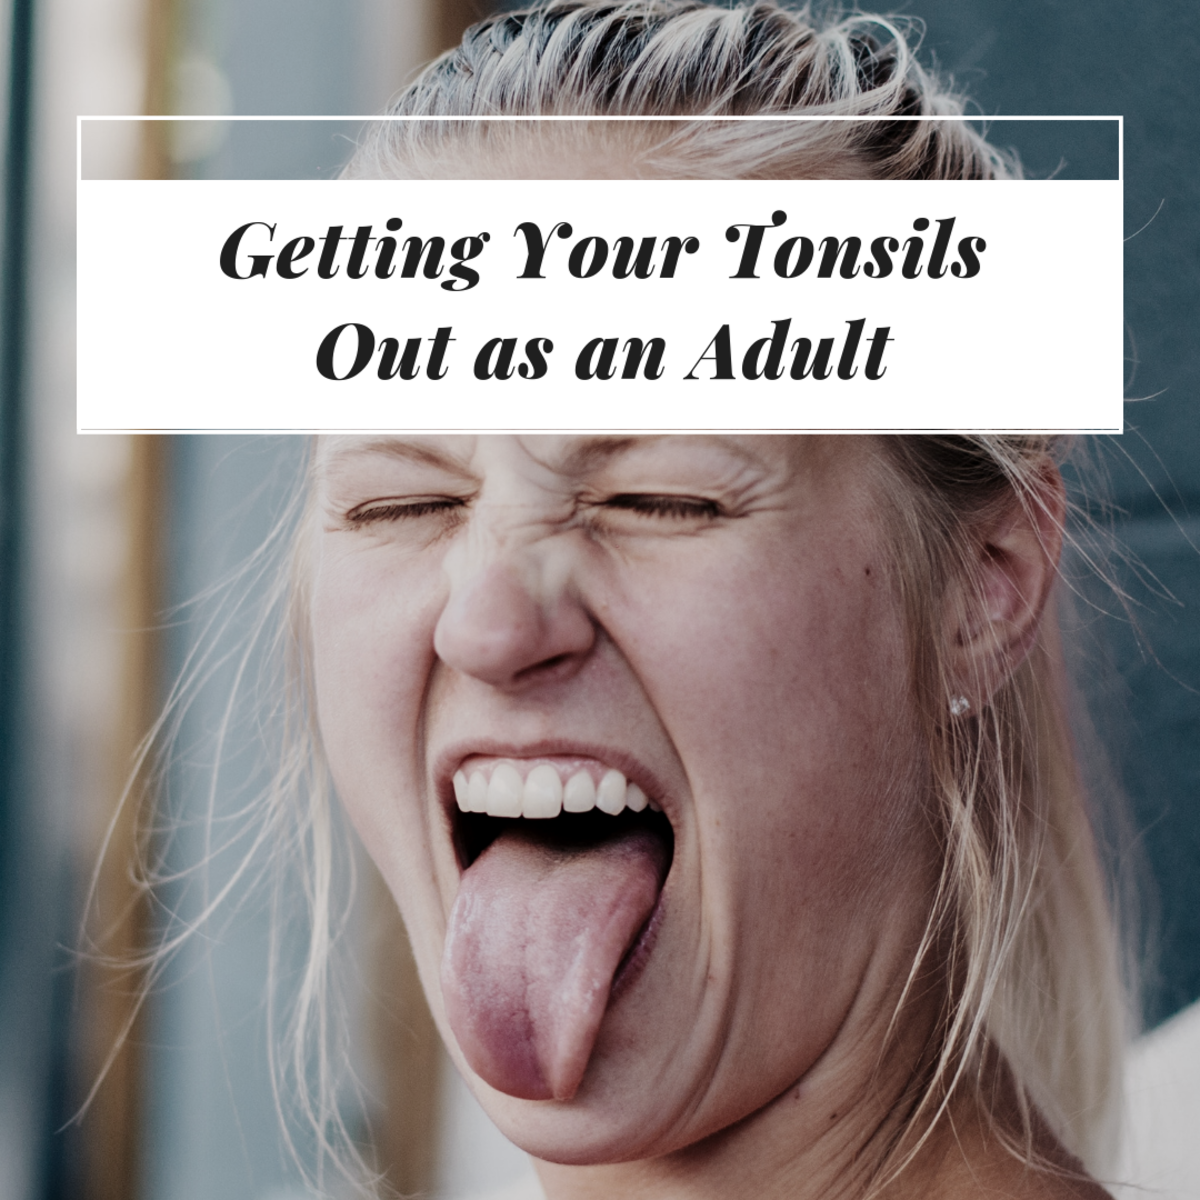 My Tonsillectomy: Getting Your Tonsils Out as an Adult